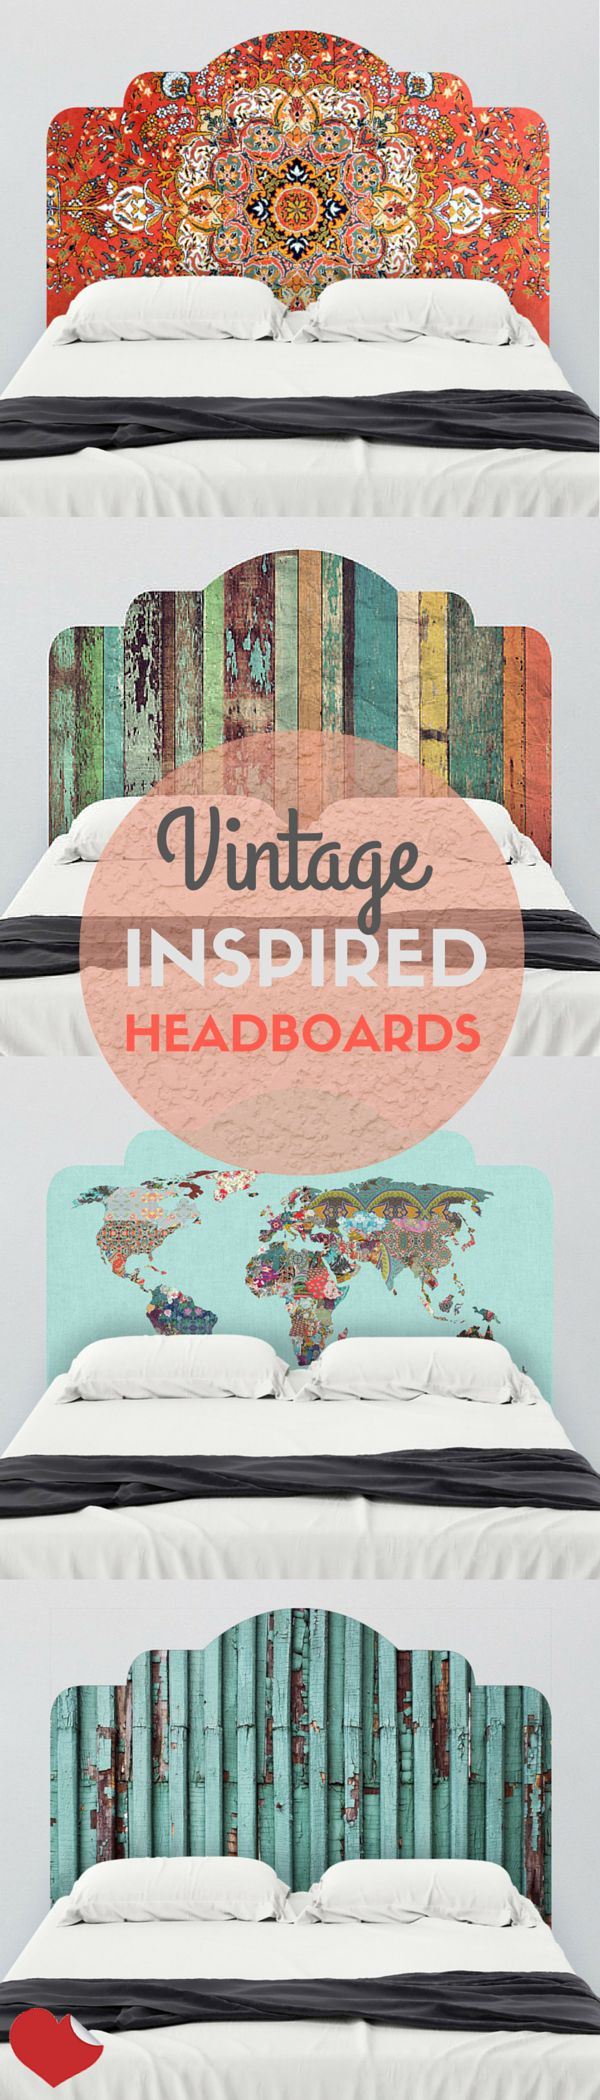 Get inspired by all things vintage and bohemian with these adhesive, vintage-inspired headboard wall decals at wallsneedlove.com. Perfect for renters, and college students. Their removable, reusable and oh so adorable. Find these and more at wallsneedlove.com!